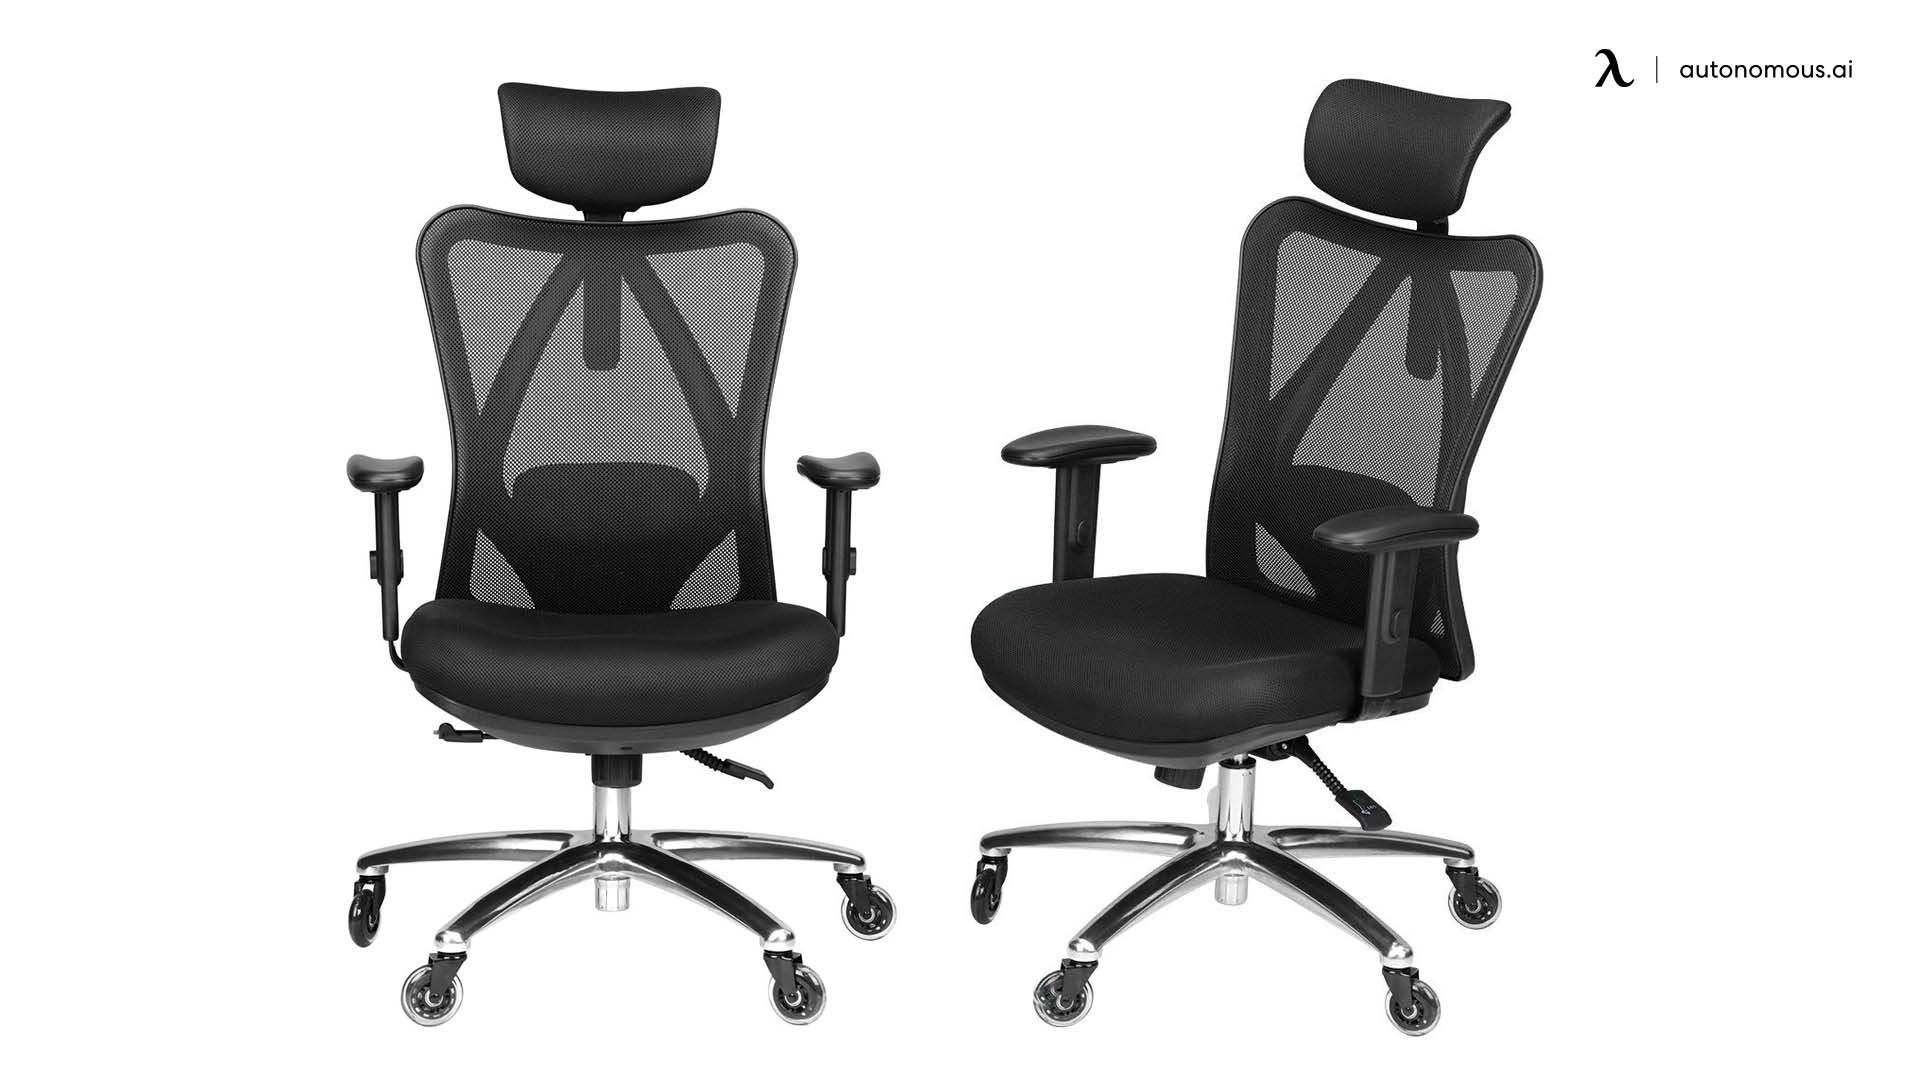 Ergonomic adjustable office chair by Duramont